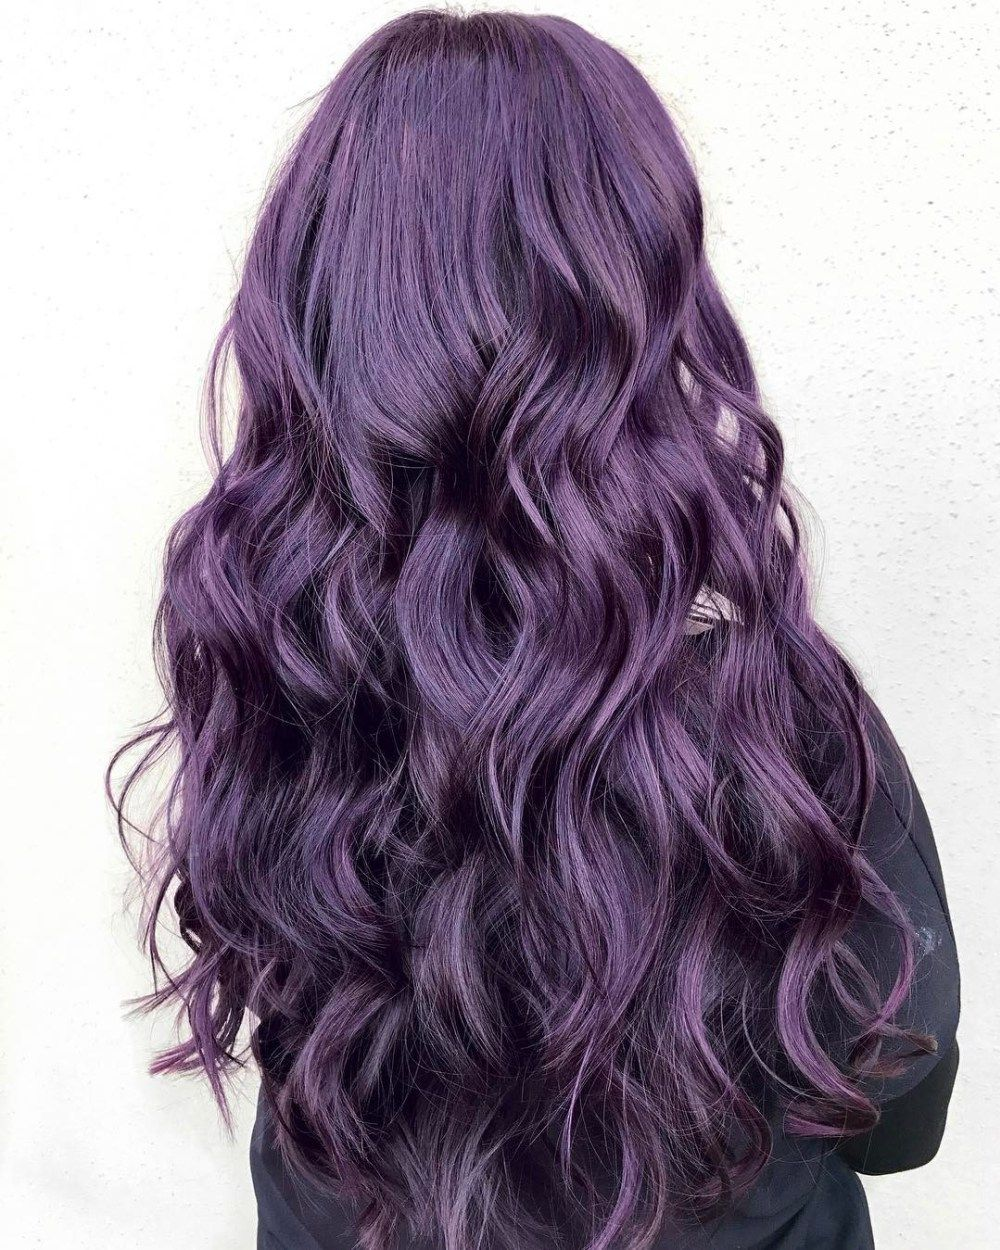 20 Plum Hair Color Ideas for Your Next Makeover ...